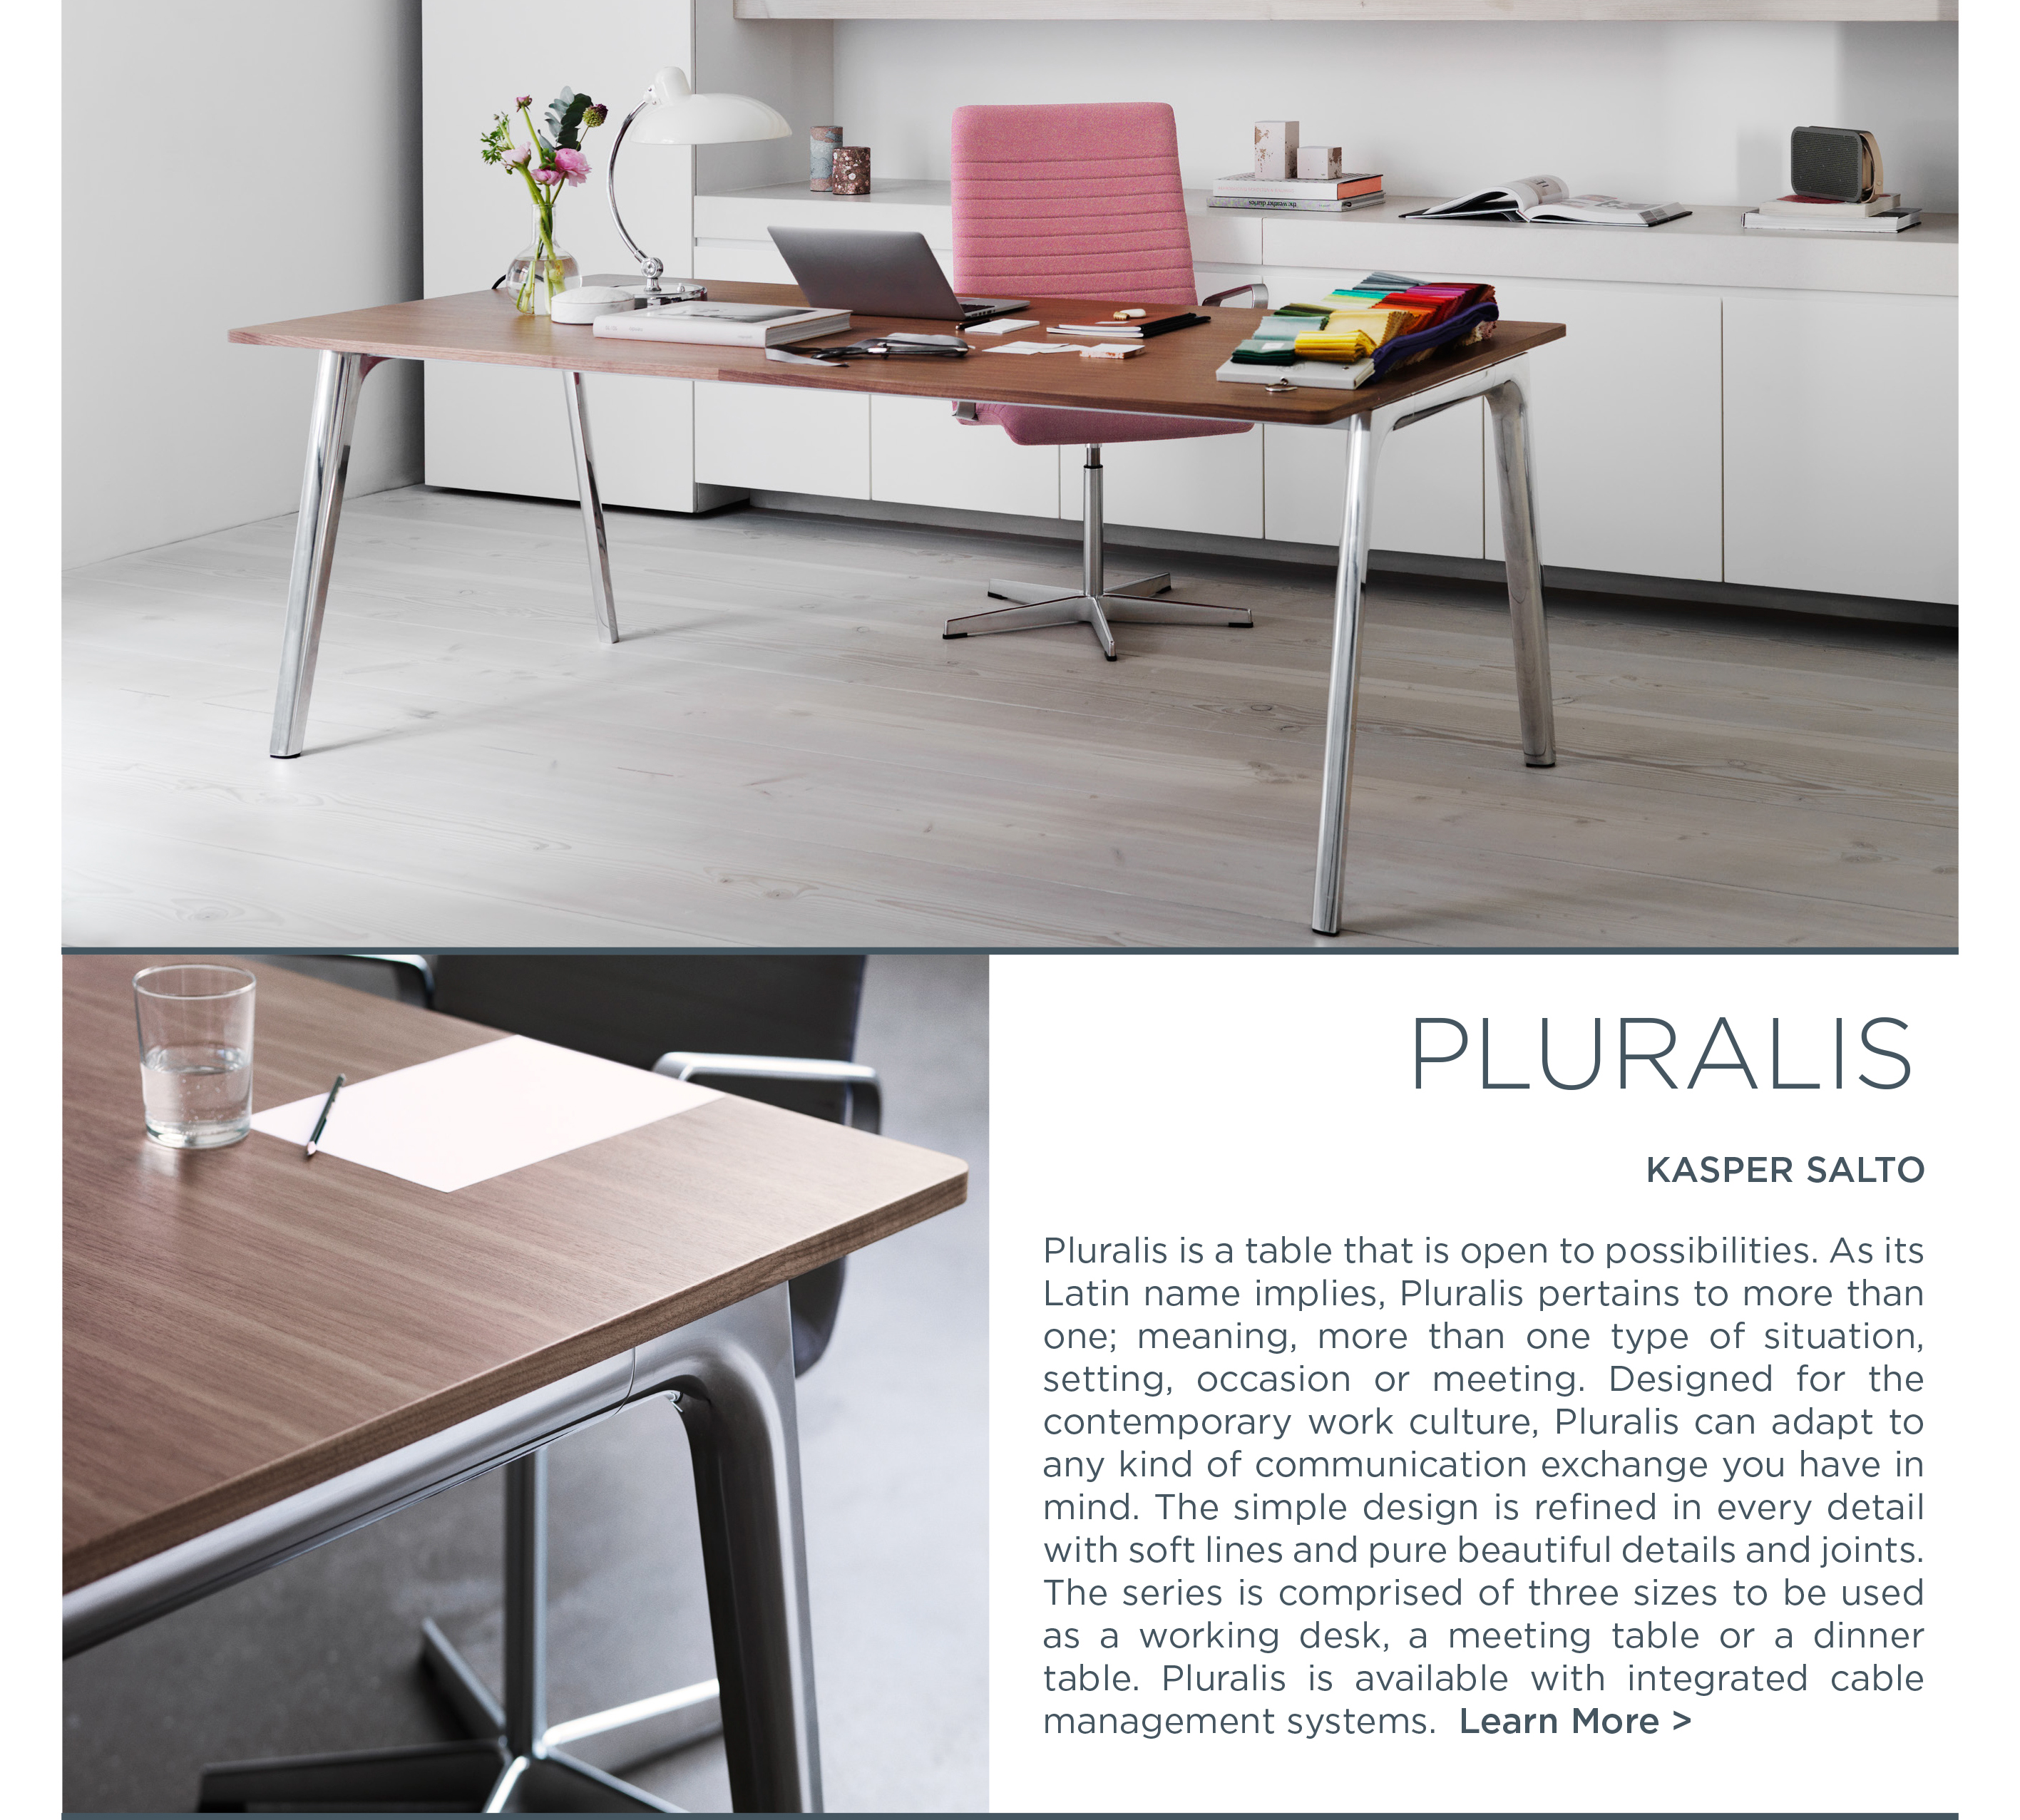 Pluralis table fritz hansen kasper salto suite ny suite new york